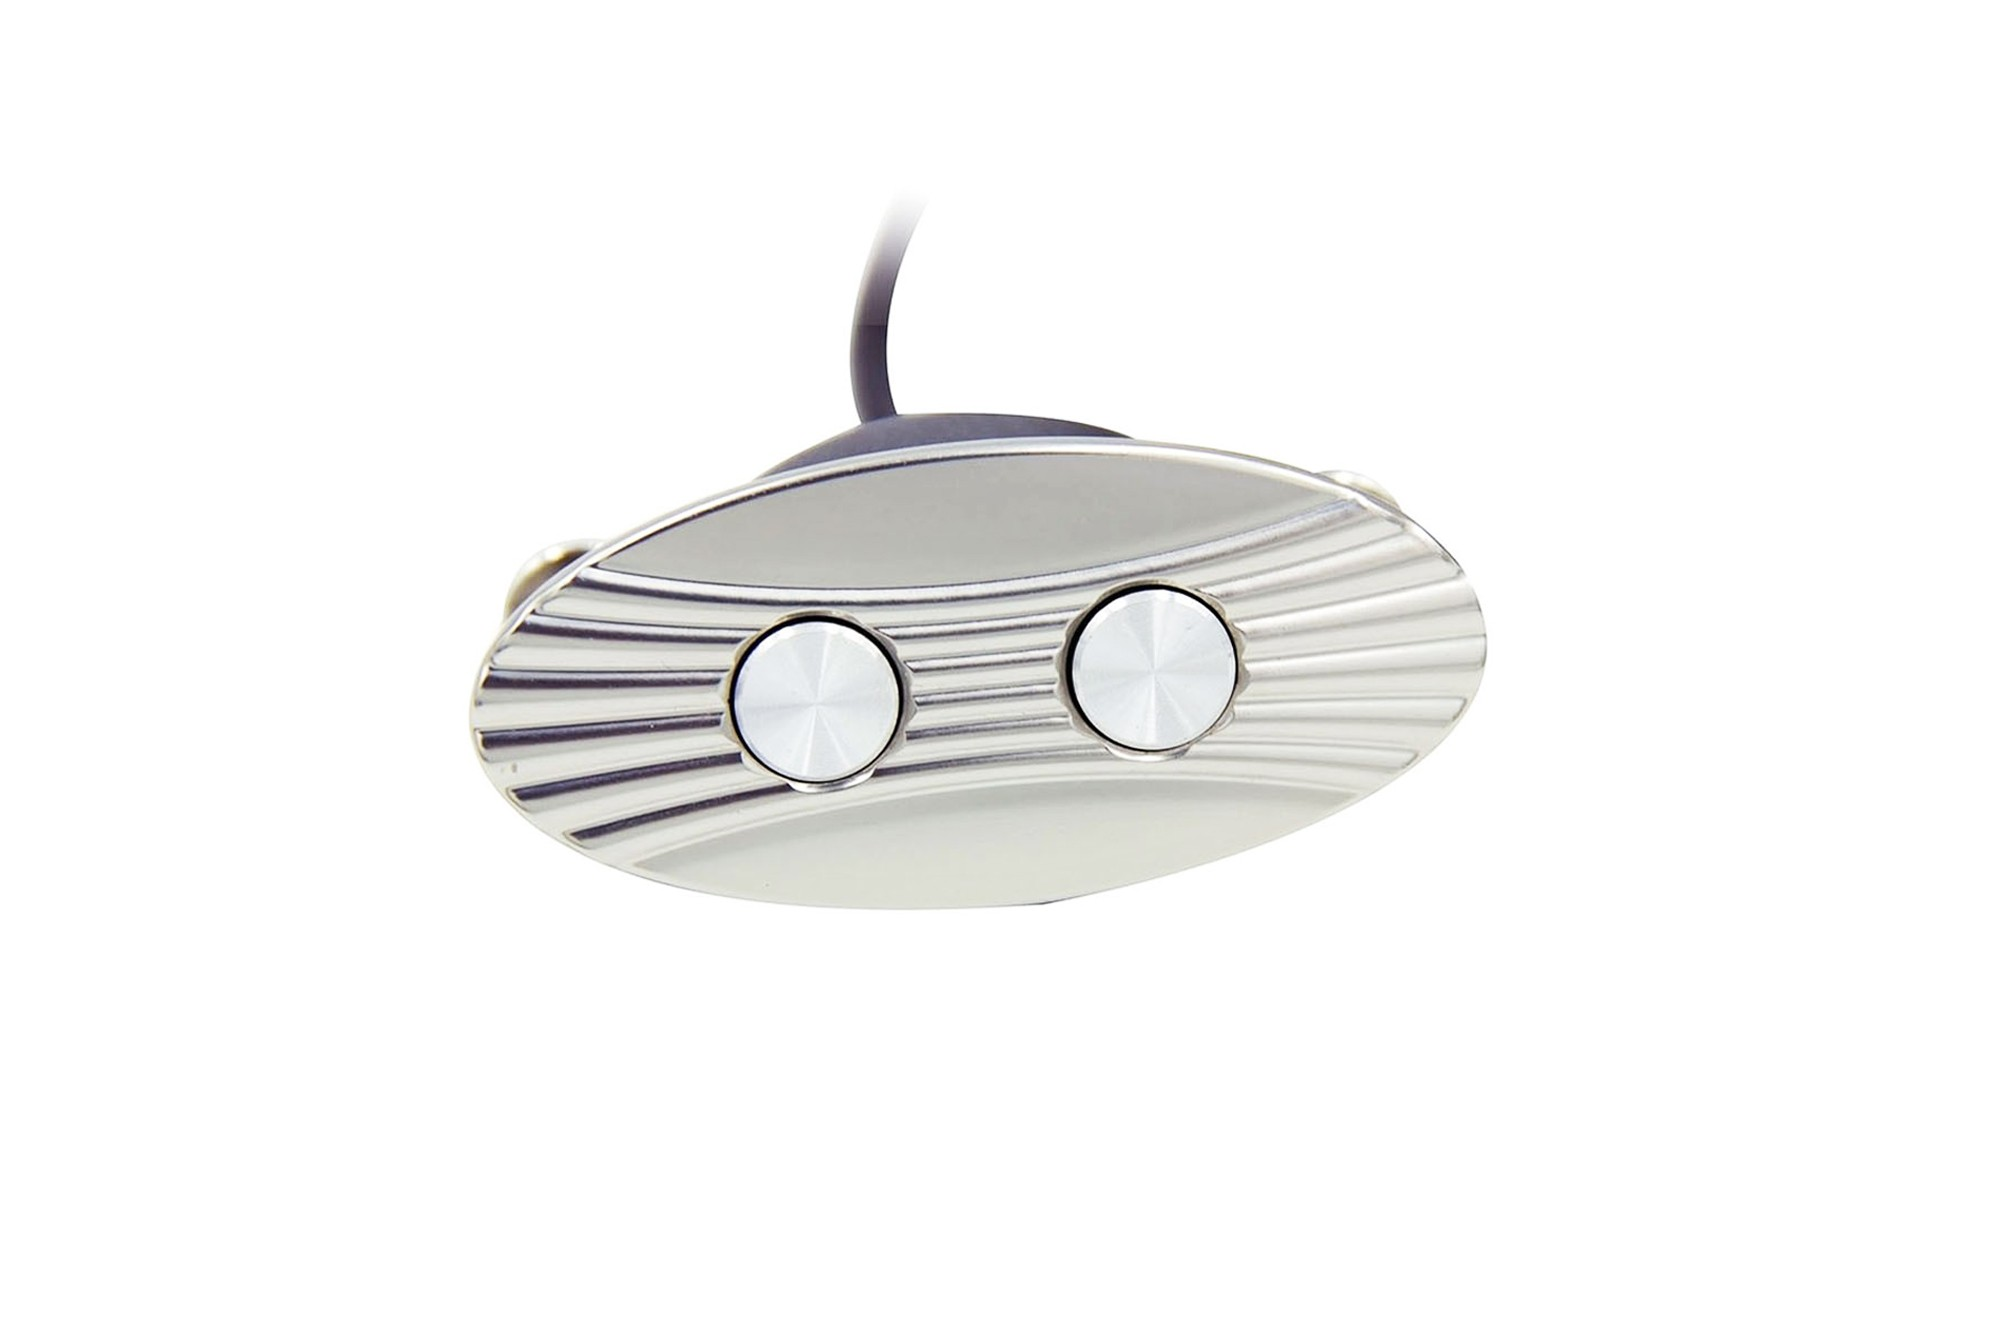 2-Button Oval Power Recline Switch in Chrome Finish